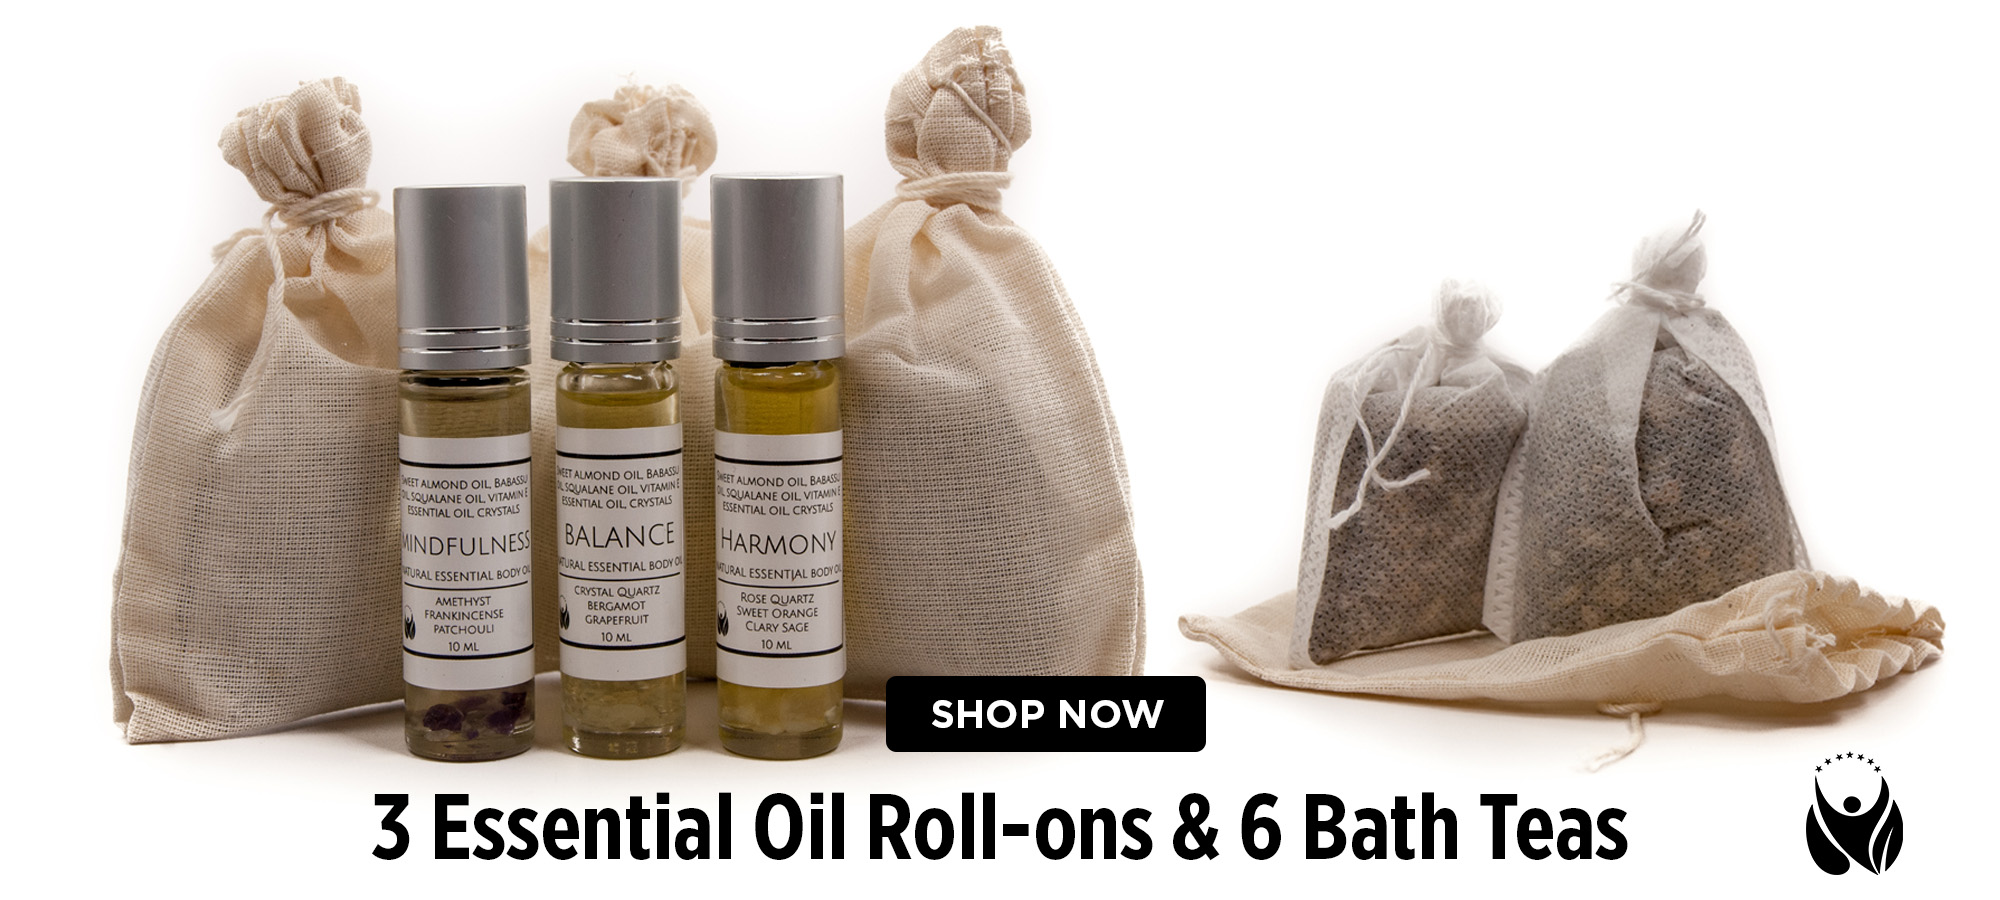 /store/ritzalife/p/1491:c:158/home-and-bath/essential-oil-and-bath-tea-package/